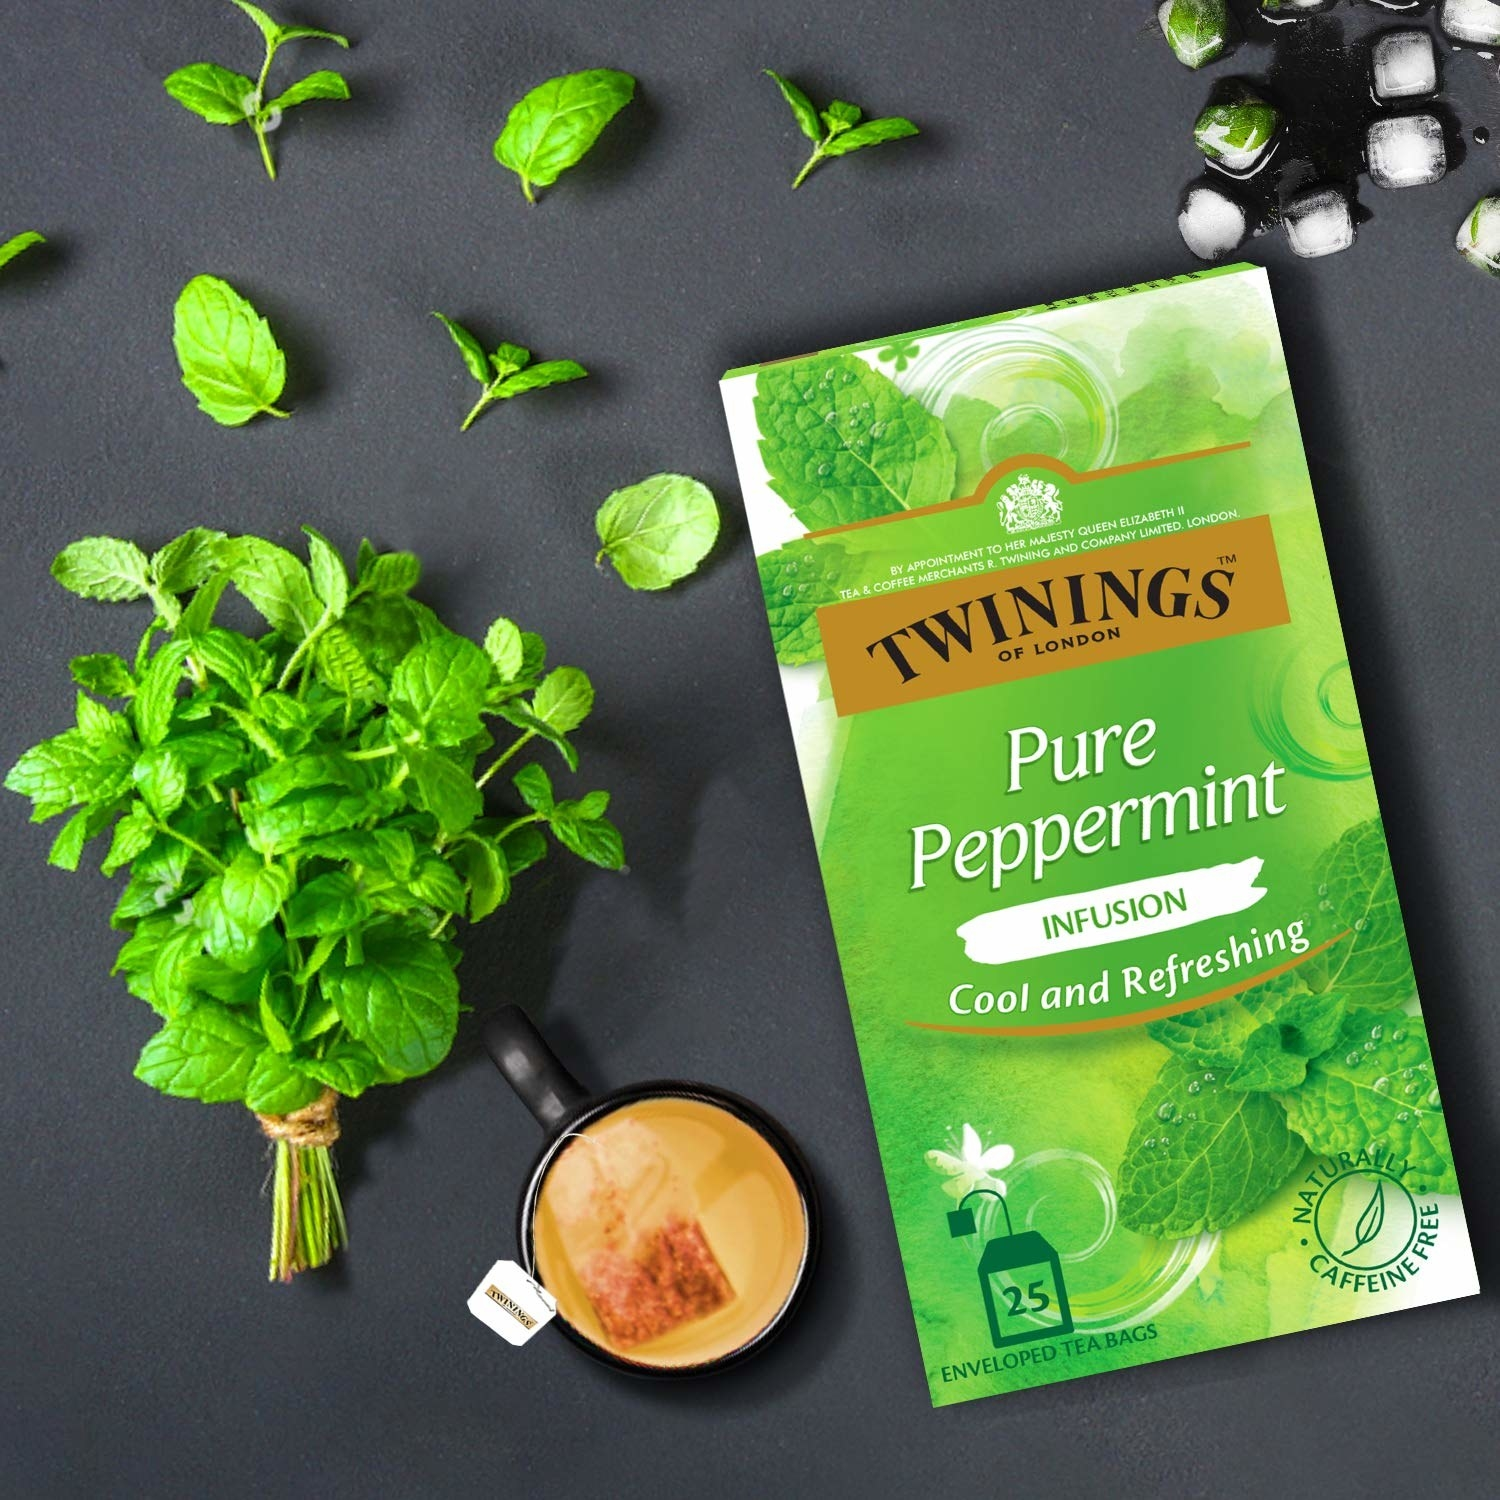 The box of the tea. A cup of peppermint tea and mint leaves are kept next to it.